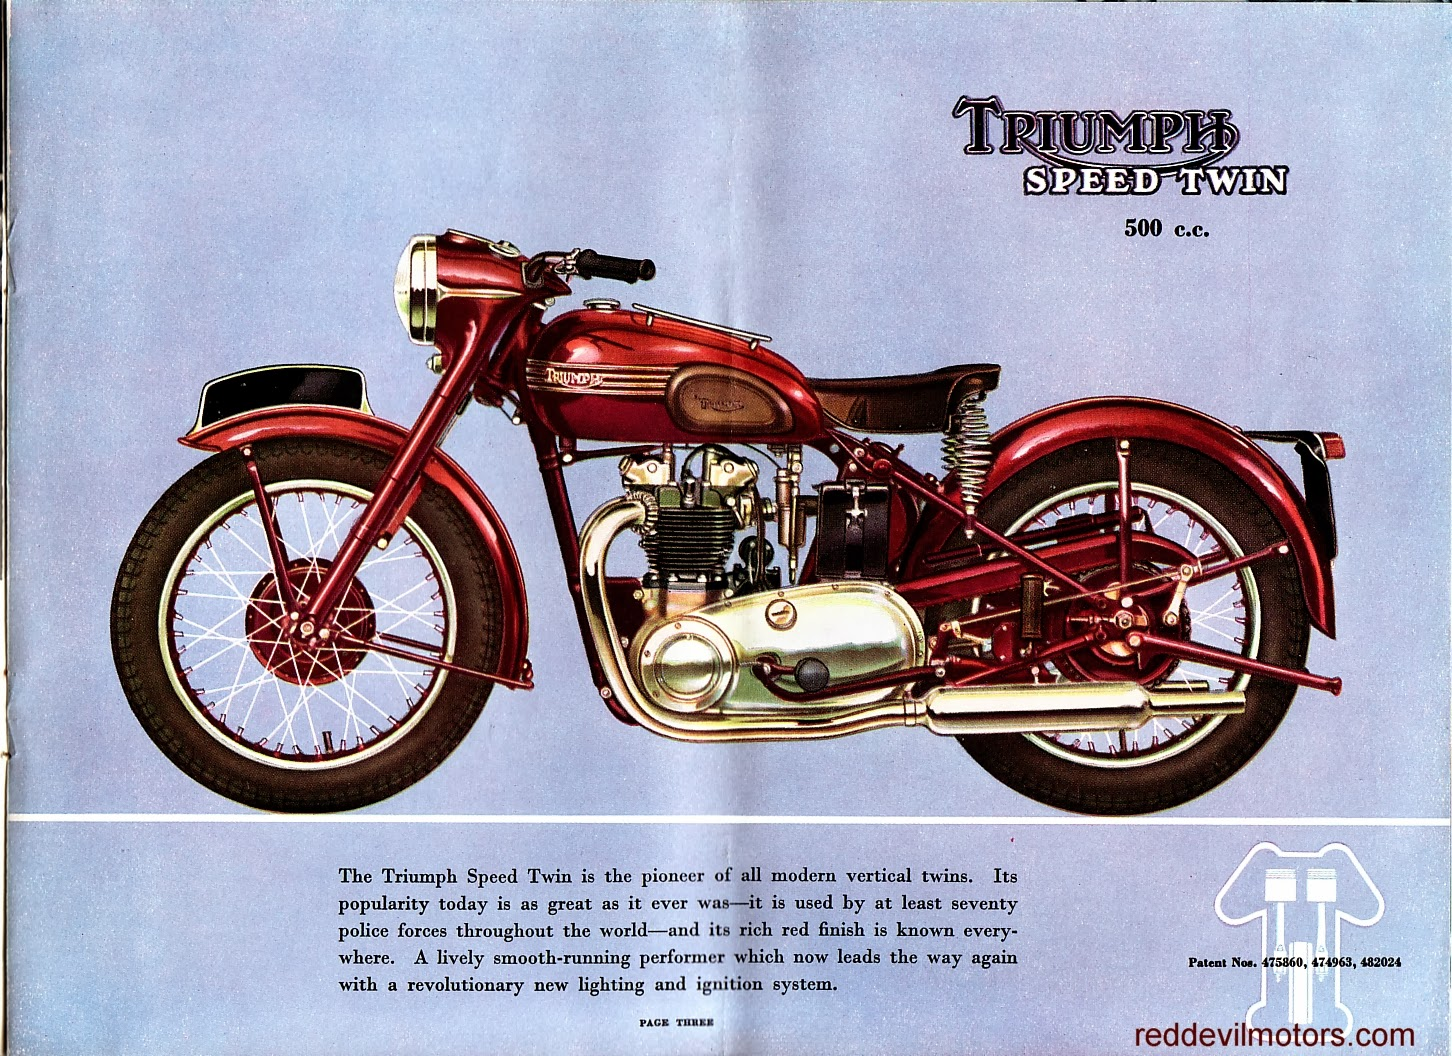 Vincent motorcycle brochure 1952 front cover - Triumph Brochure 1952 Page 4